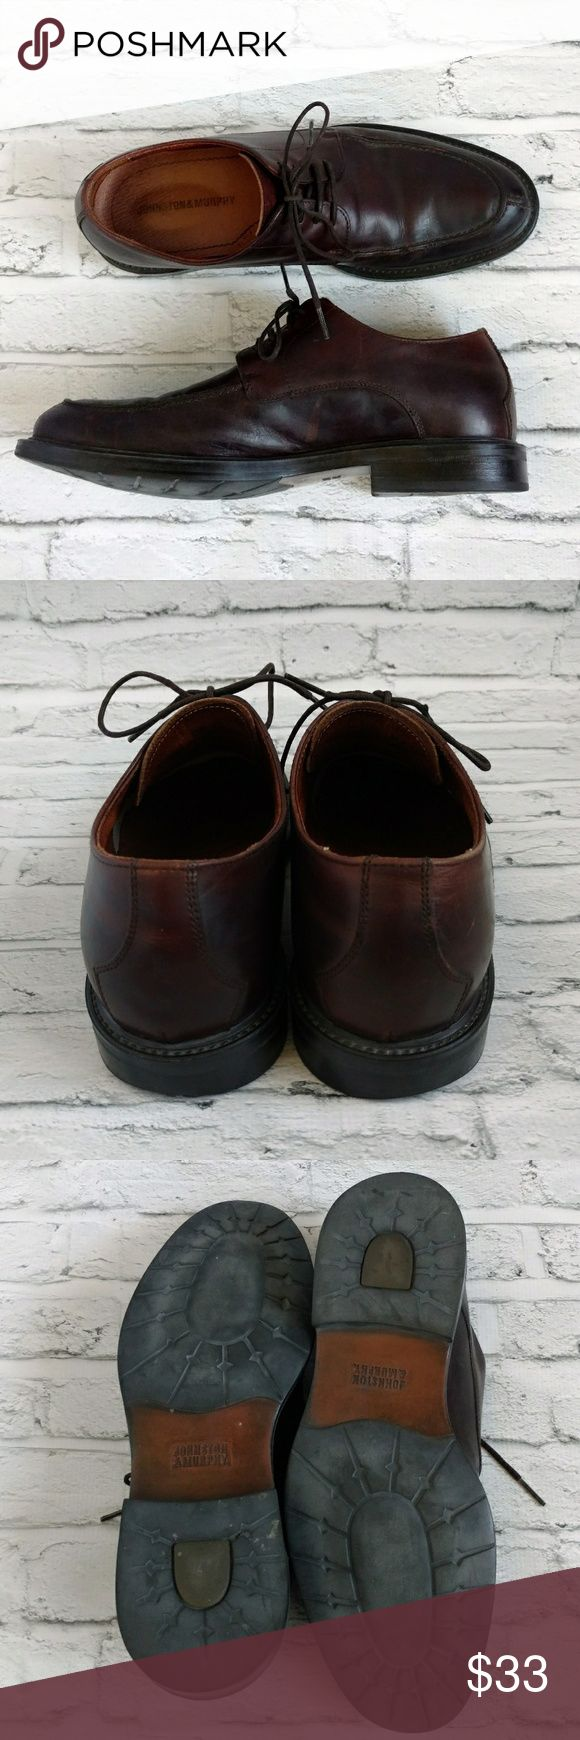 Johnston and Murphy classic shoes EUC. Made in Italy. Leather uppers. Deep rich brown. Johnston & Murphy Shoes Oxfords & Derbys